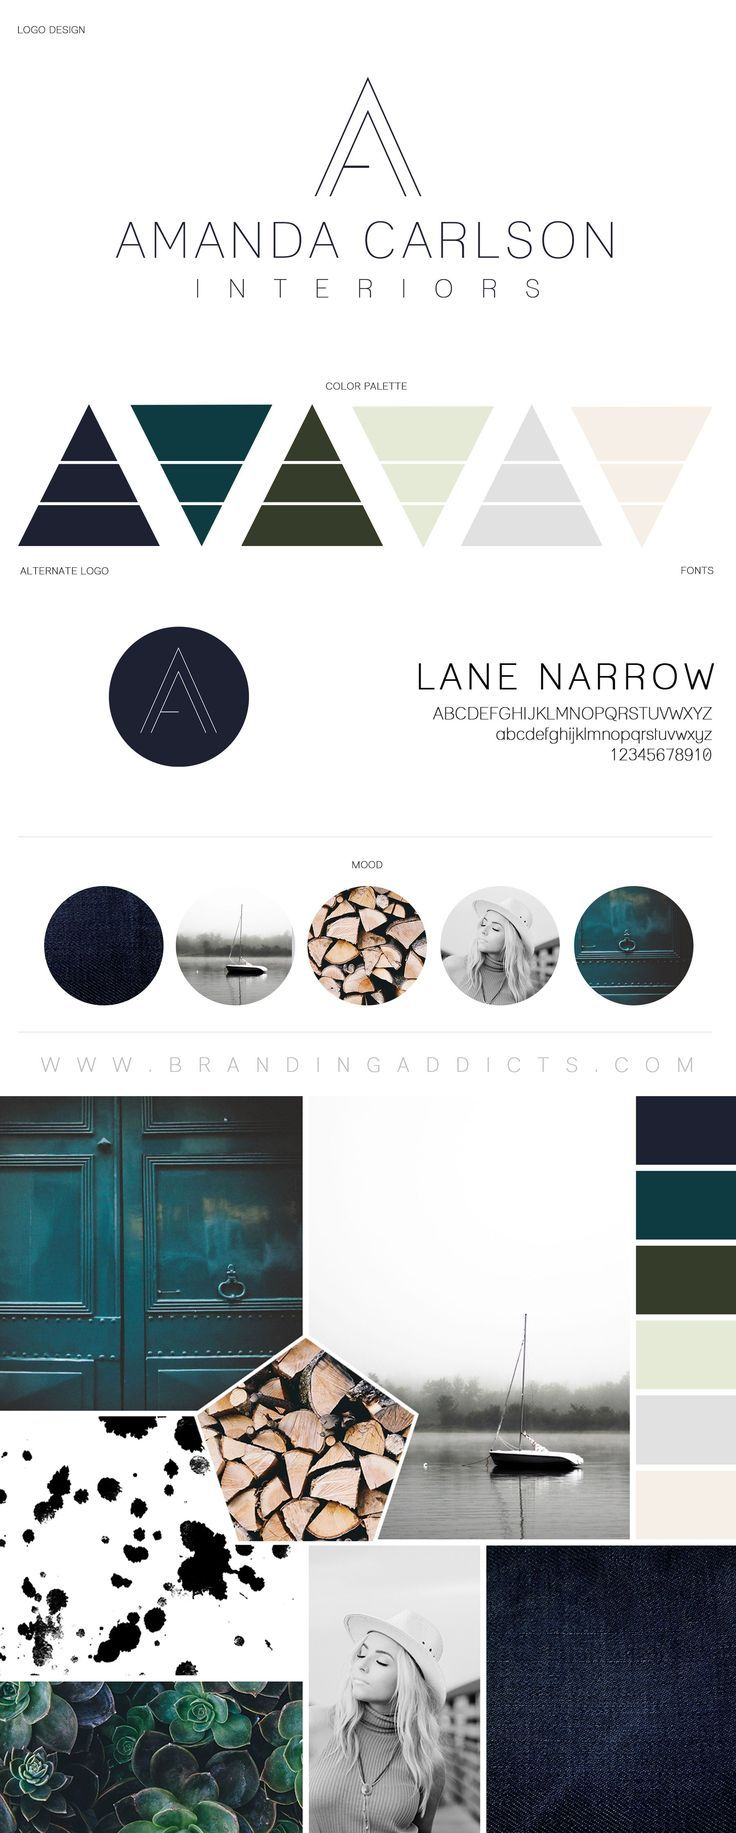 How To Handle Industrial Style With The Best Lighting Designs Mood Board Design House Logo Design Portfolio Design